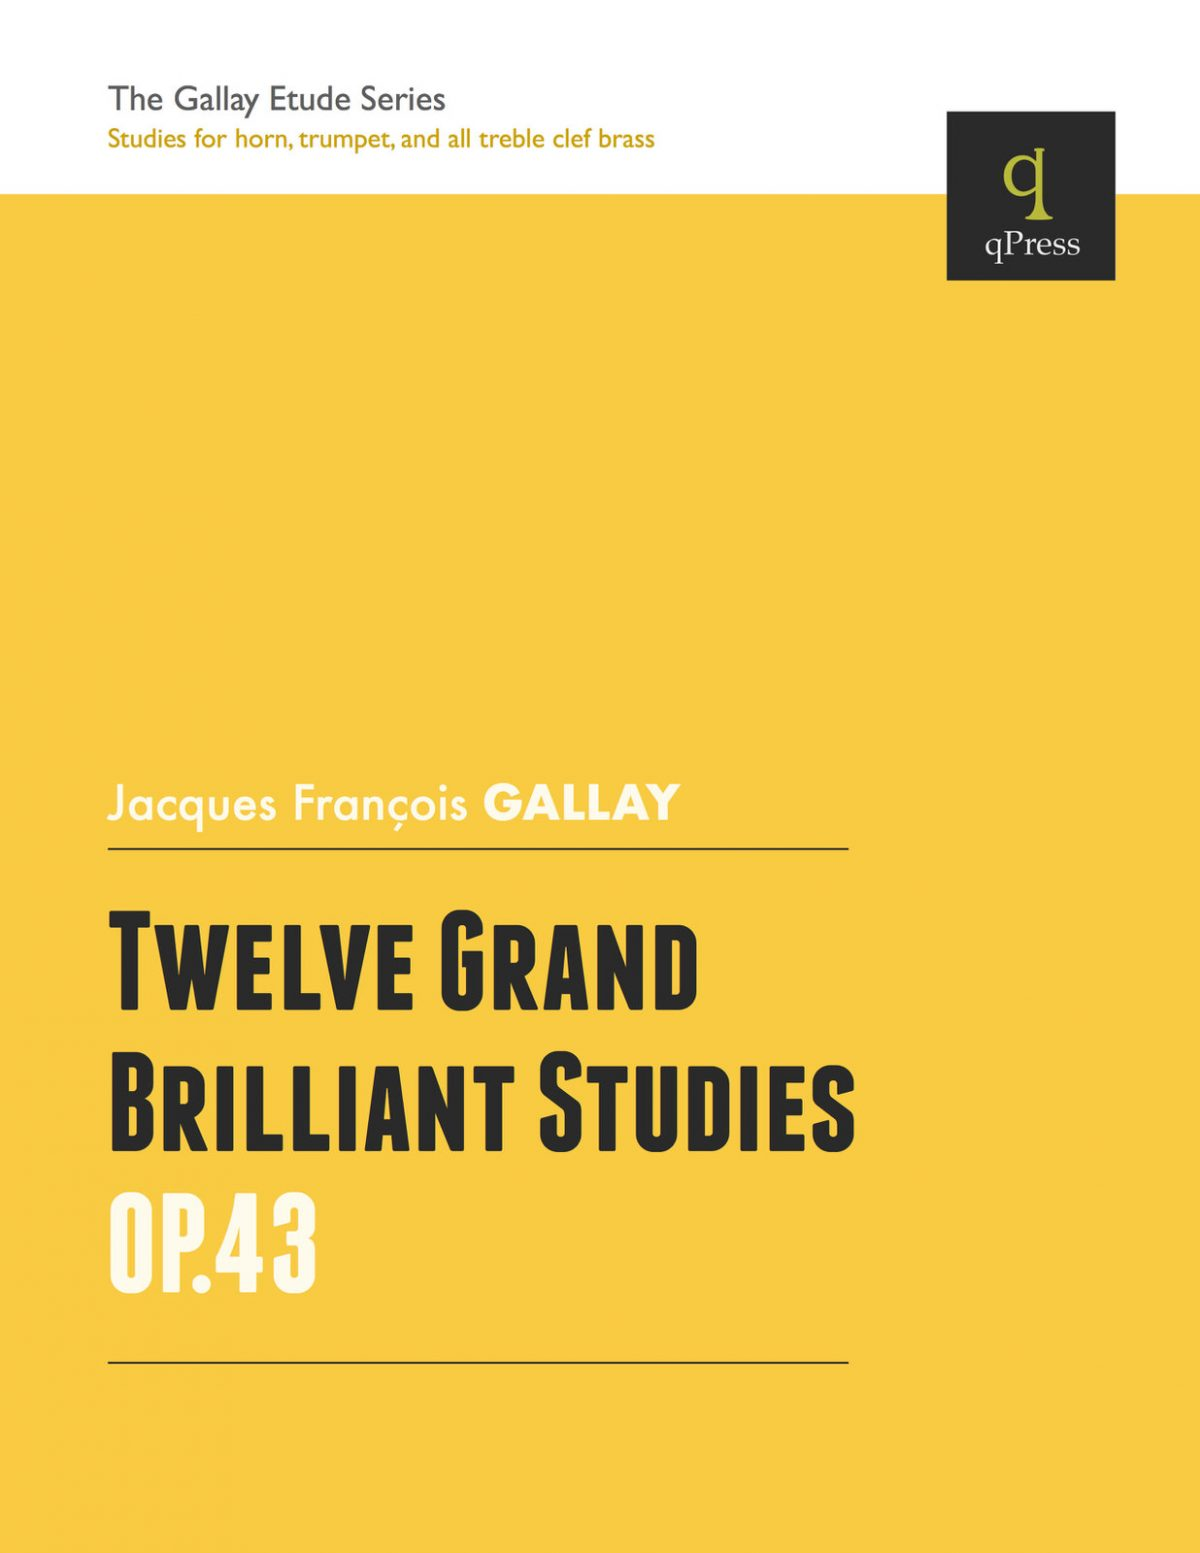 gallay-12-grand-brilliant-studies